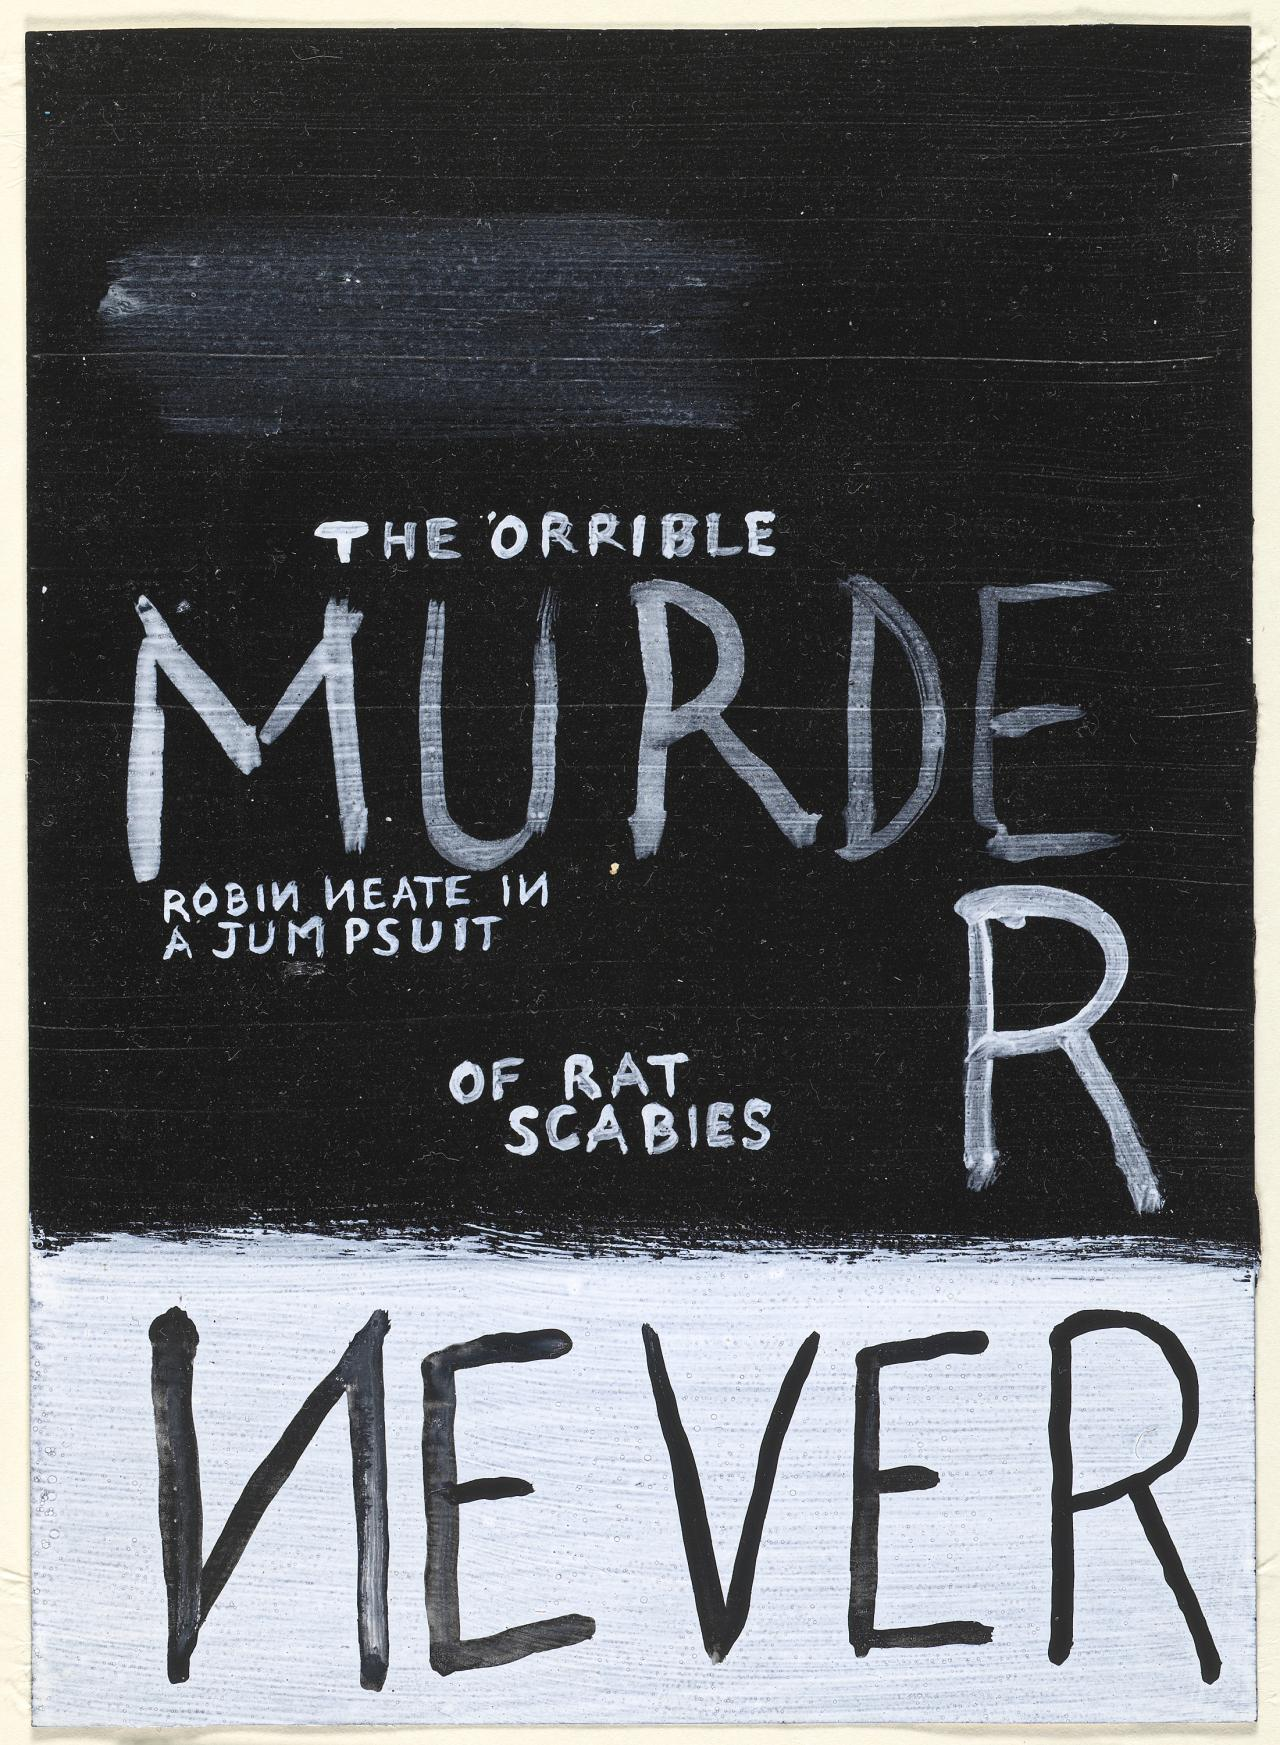 The 'orrible murder